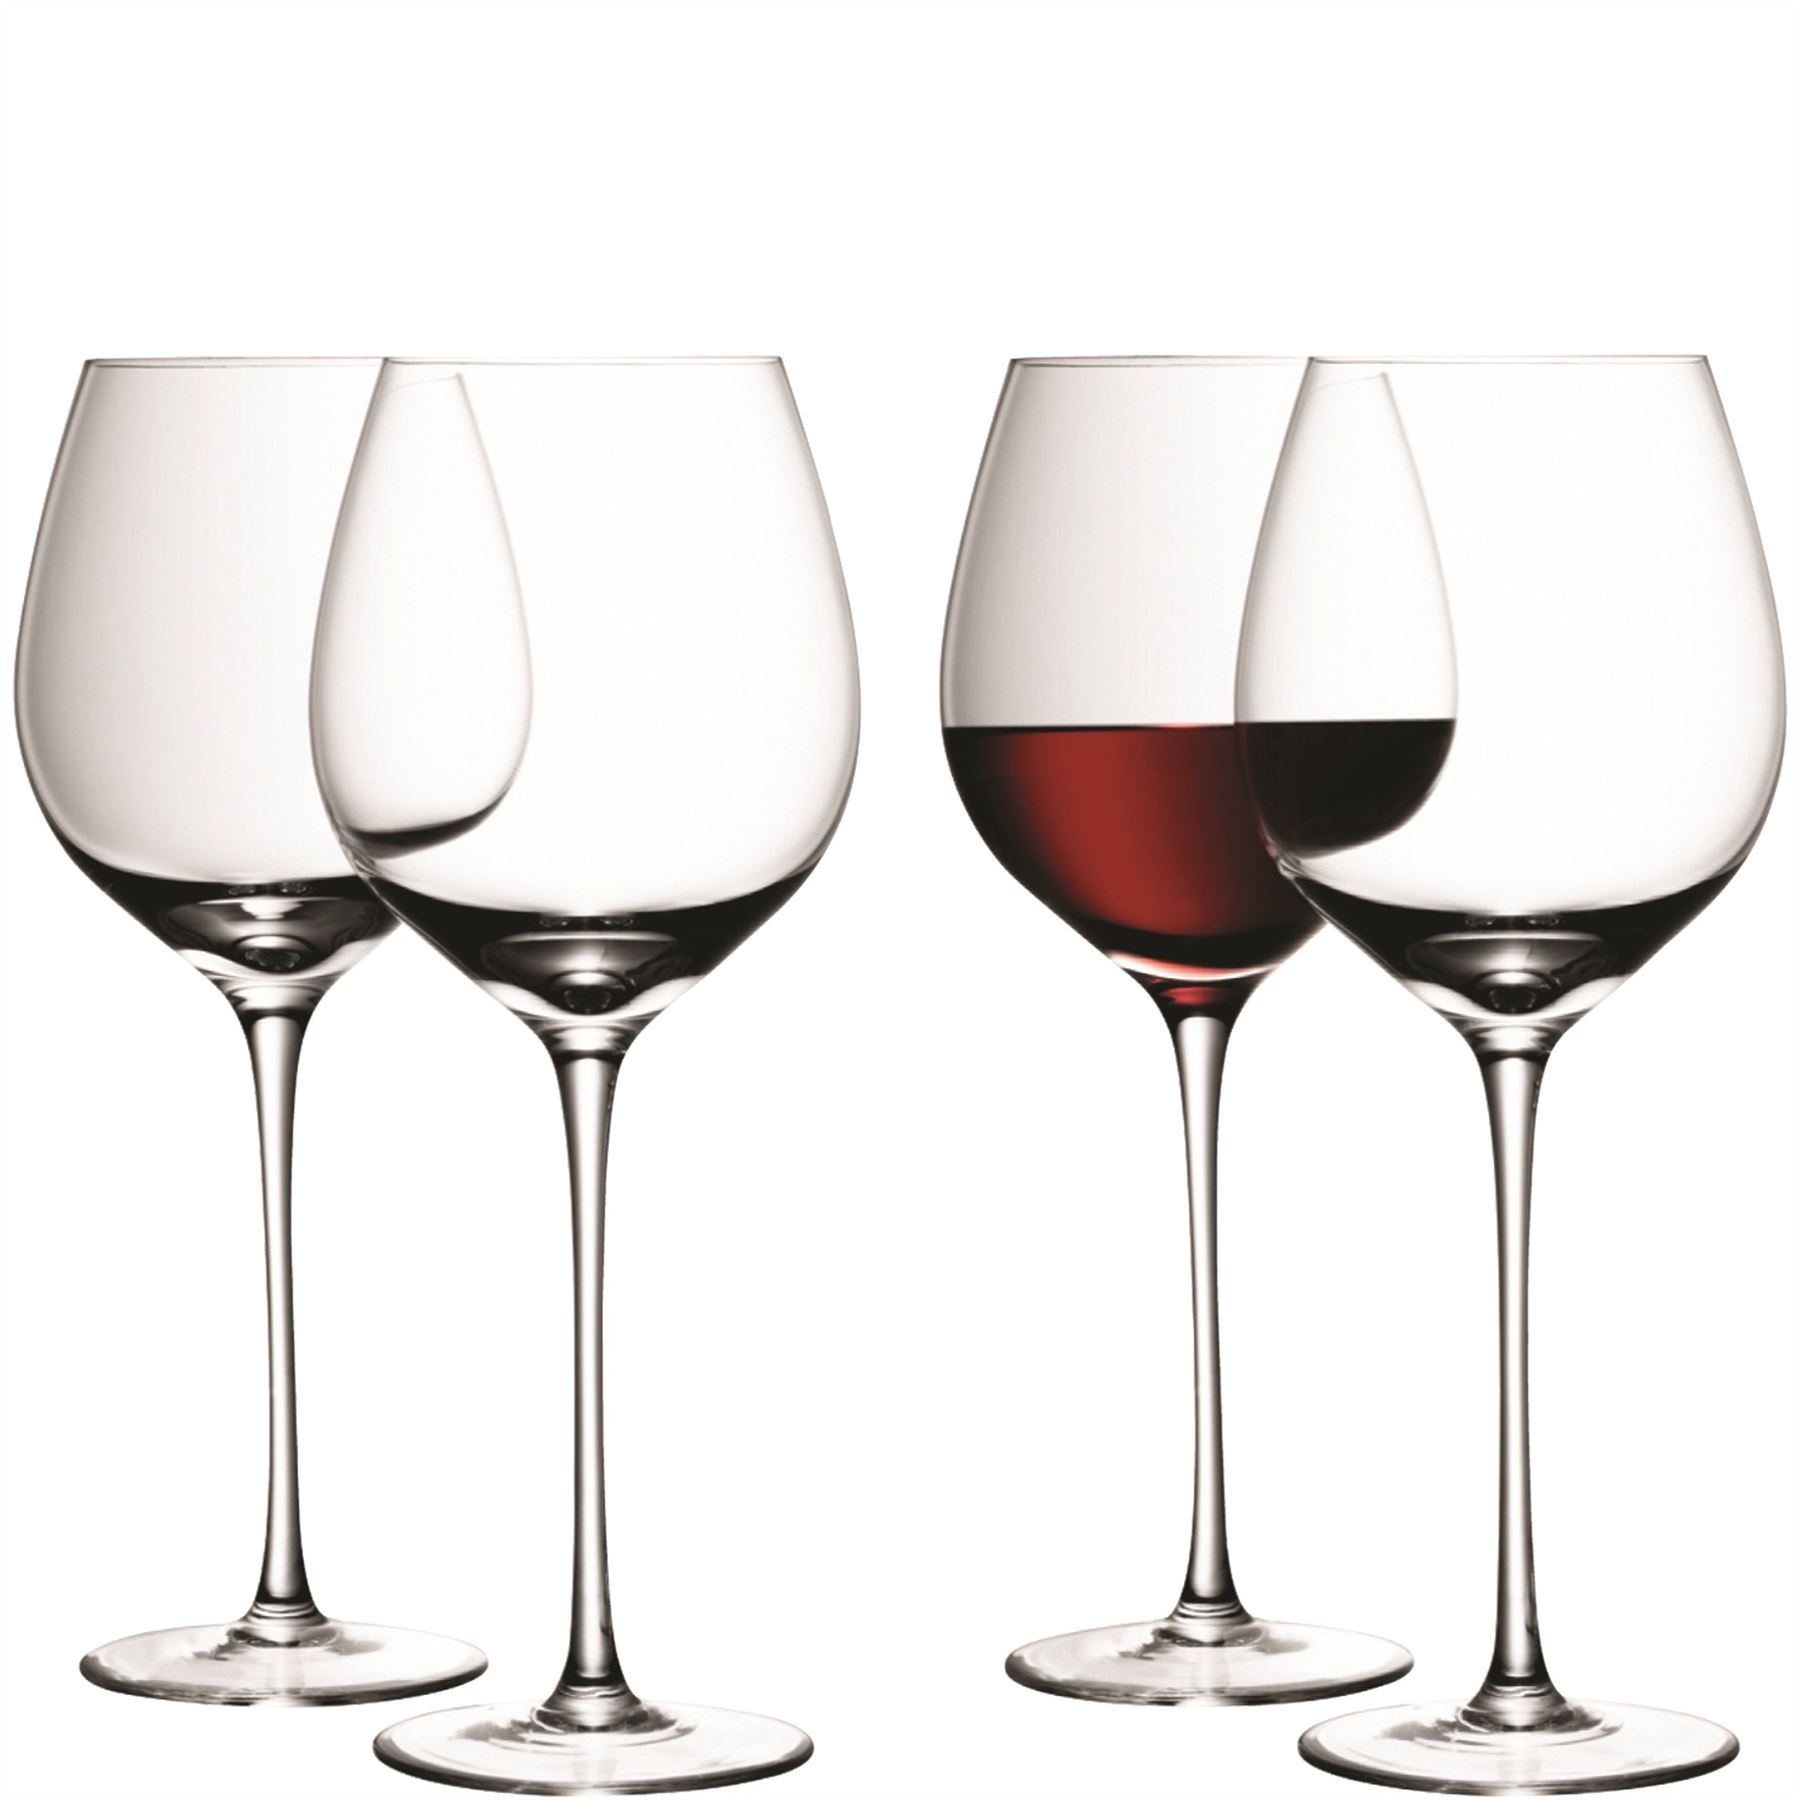 Lsa glass red or white wine glasses goblets stemless - Stemless wine goblets ...